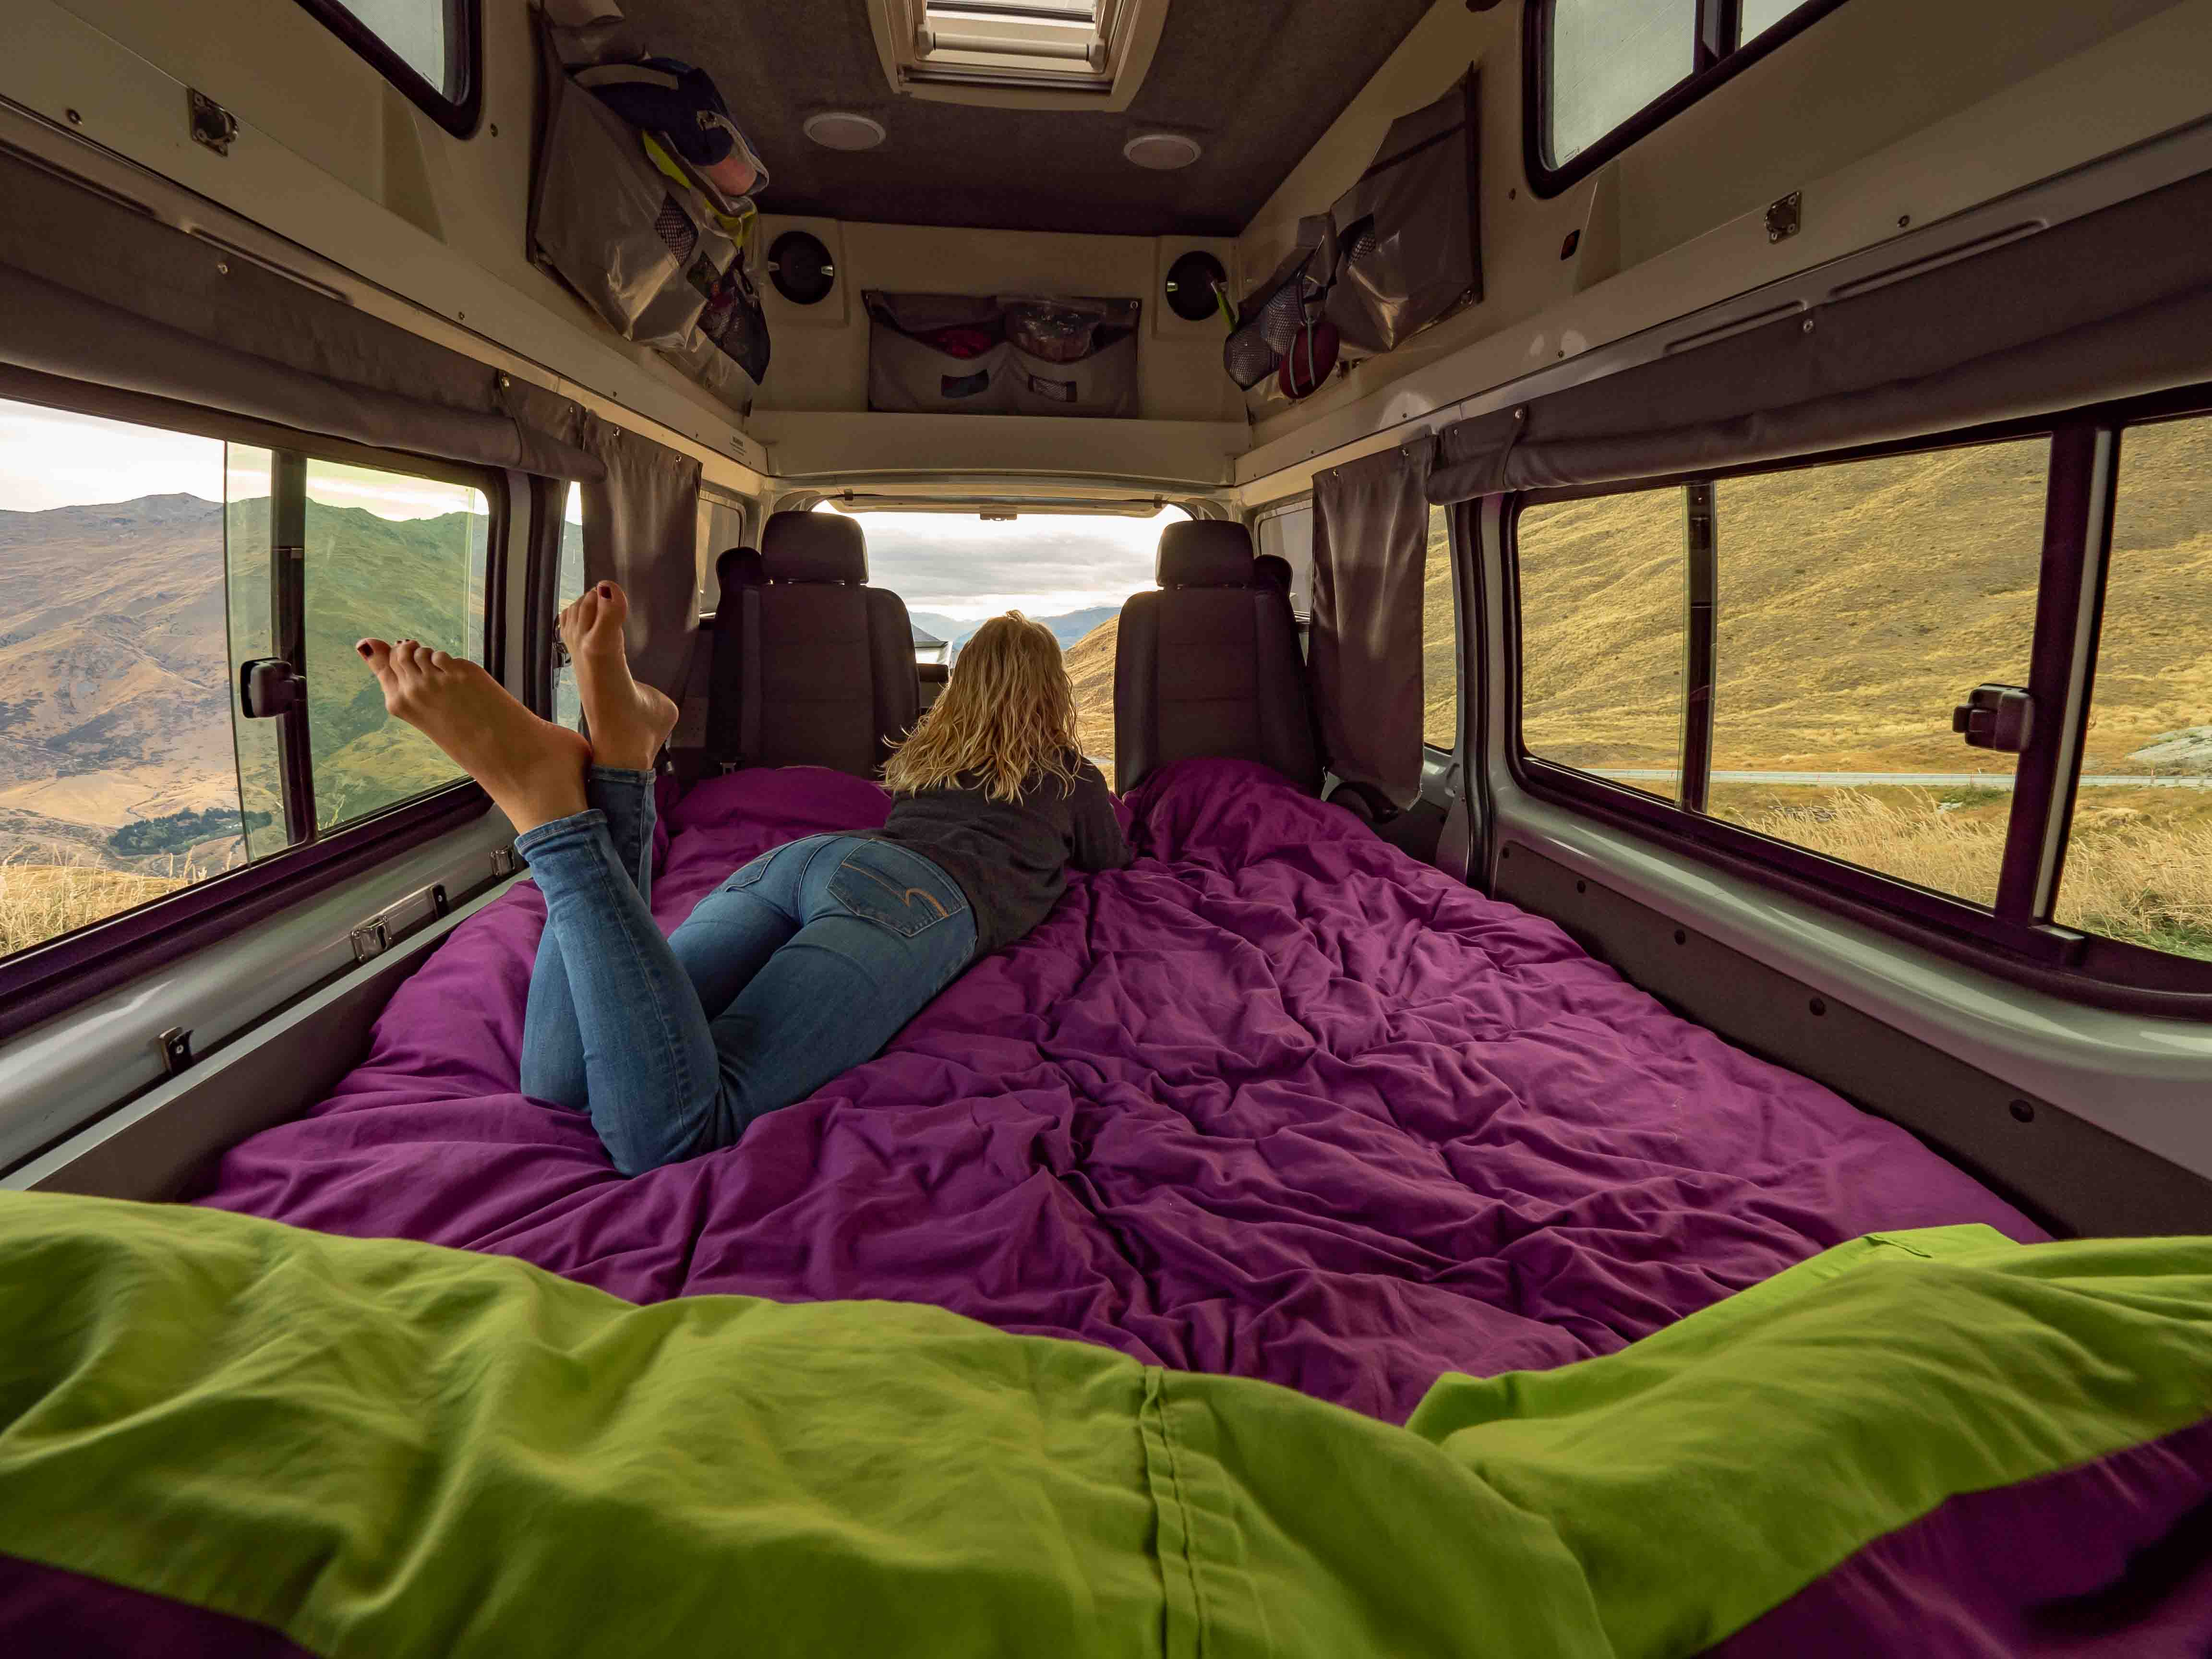 girls lays on bed inside a campervan, admiring the view. you can see green pillows in the foreground and a she is laying on a purple duvet.